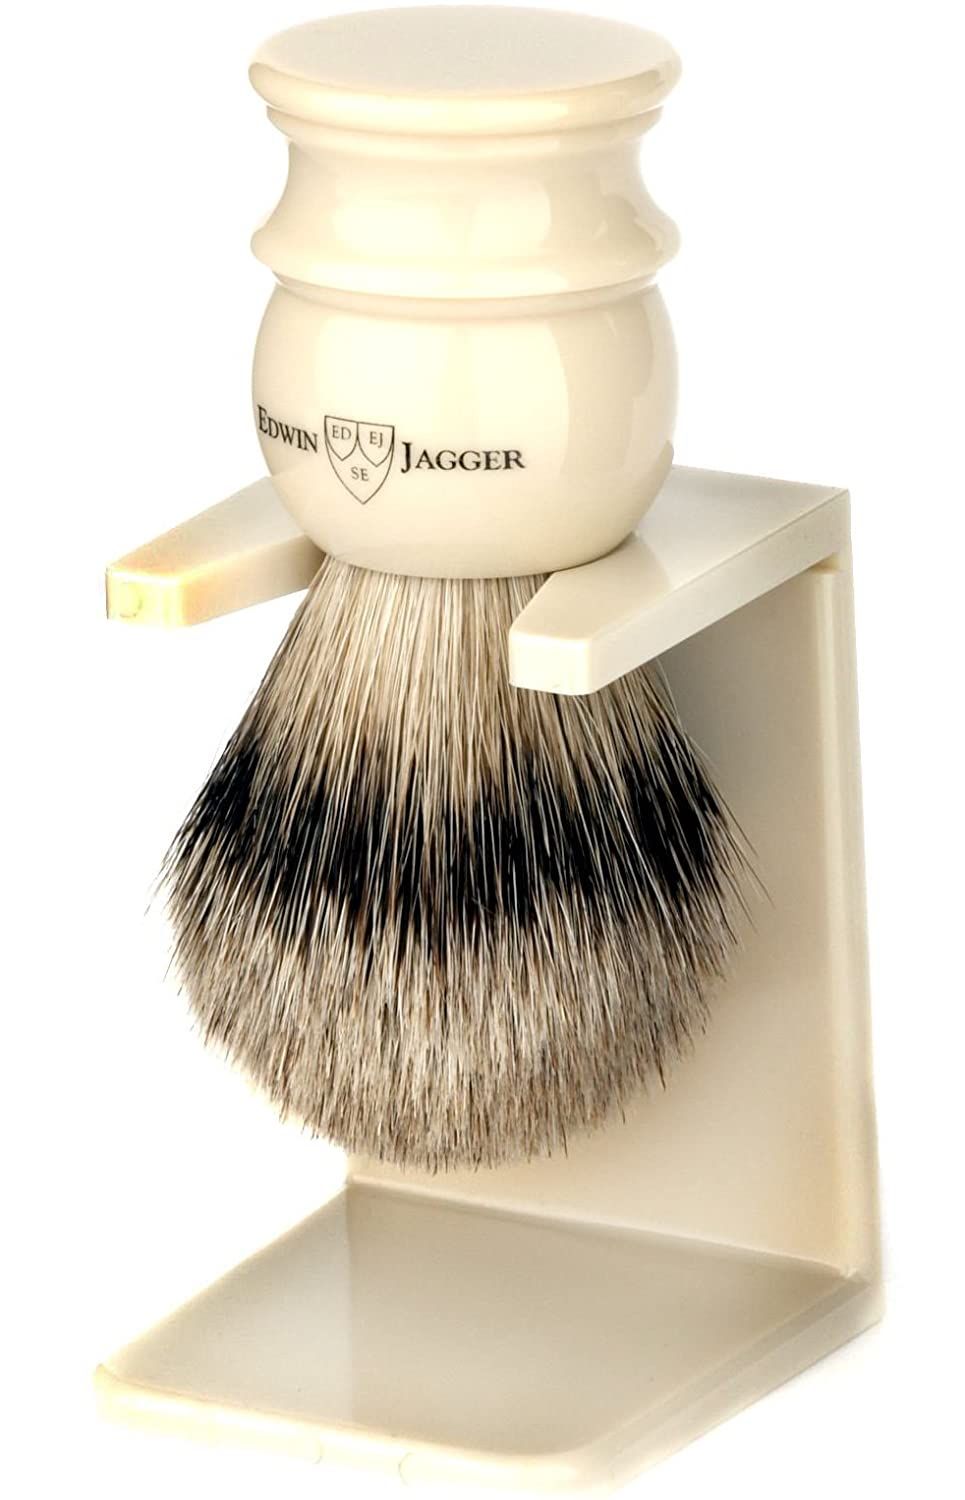 Edwin Jagger Silvertip Shaving Brush with Drip Stand - Large, Imitation Ivory 3EJ467lds badger shaving brush shave brush badger brush english shaving brush wet shaving shaving accessories